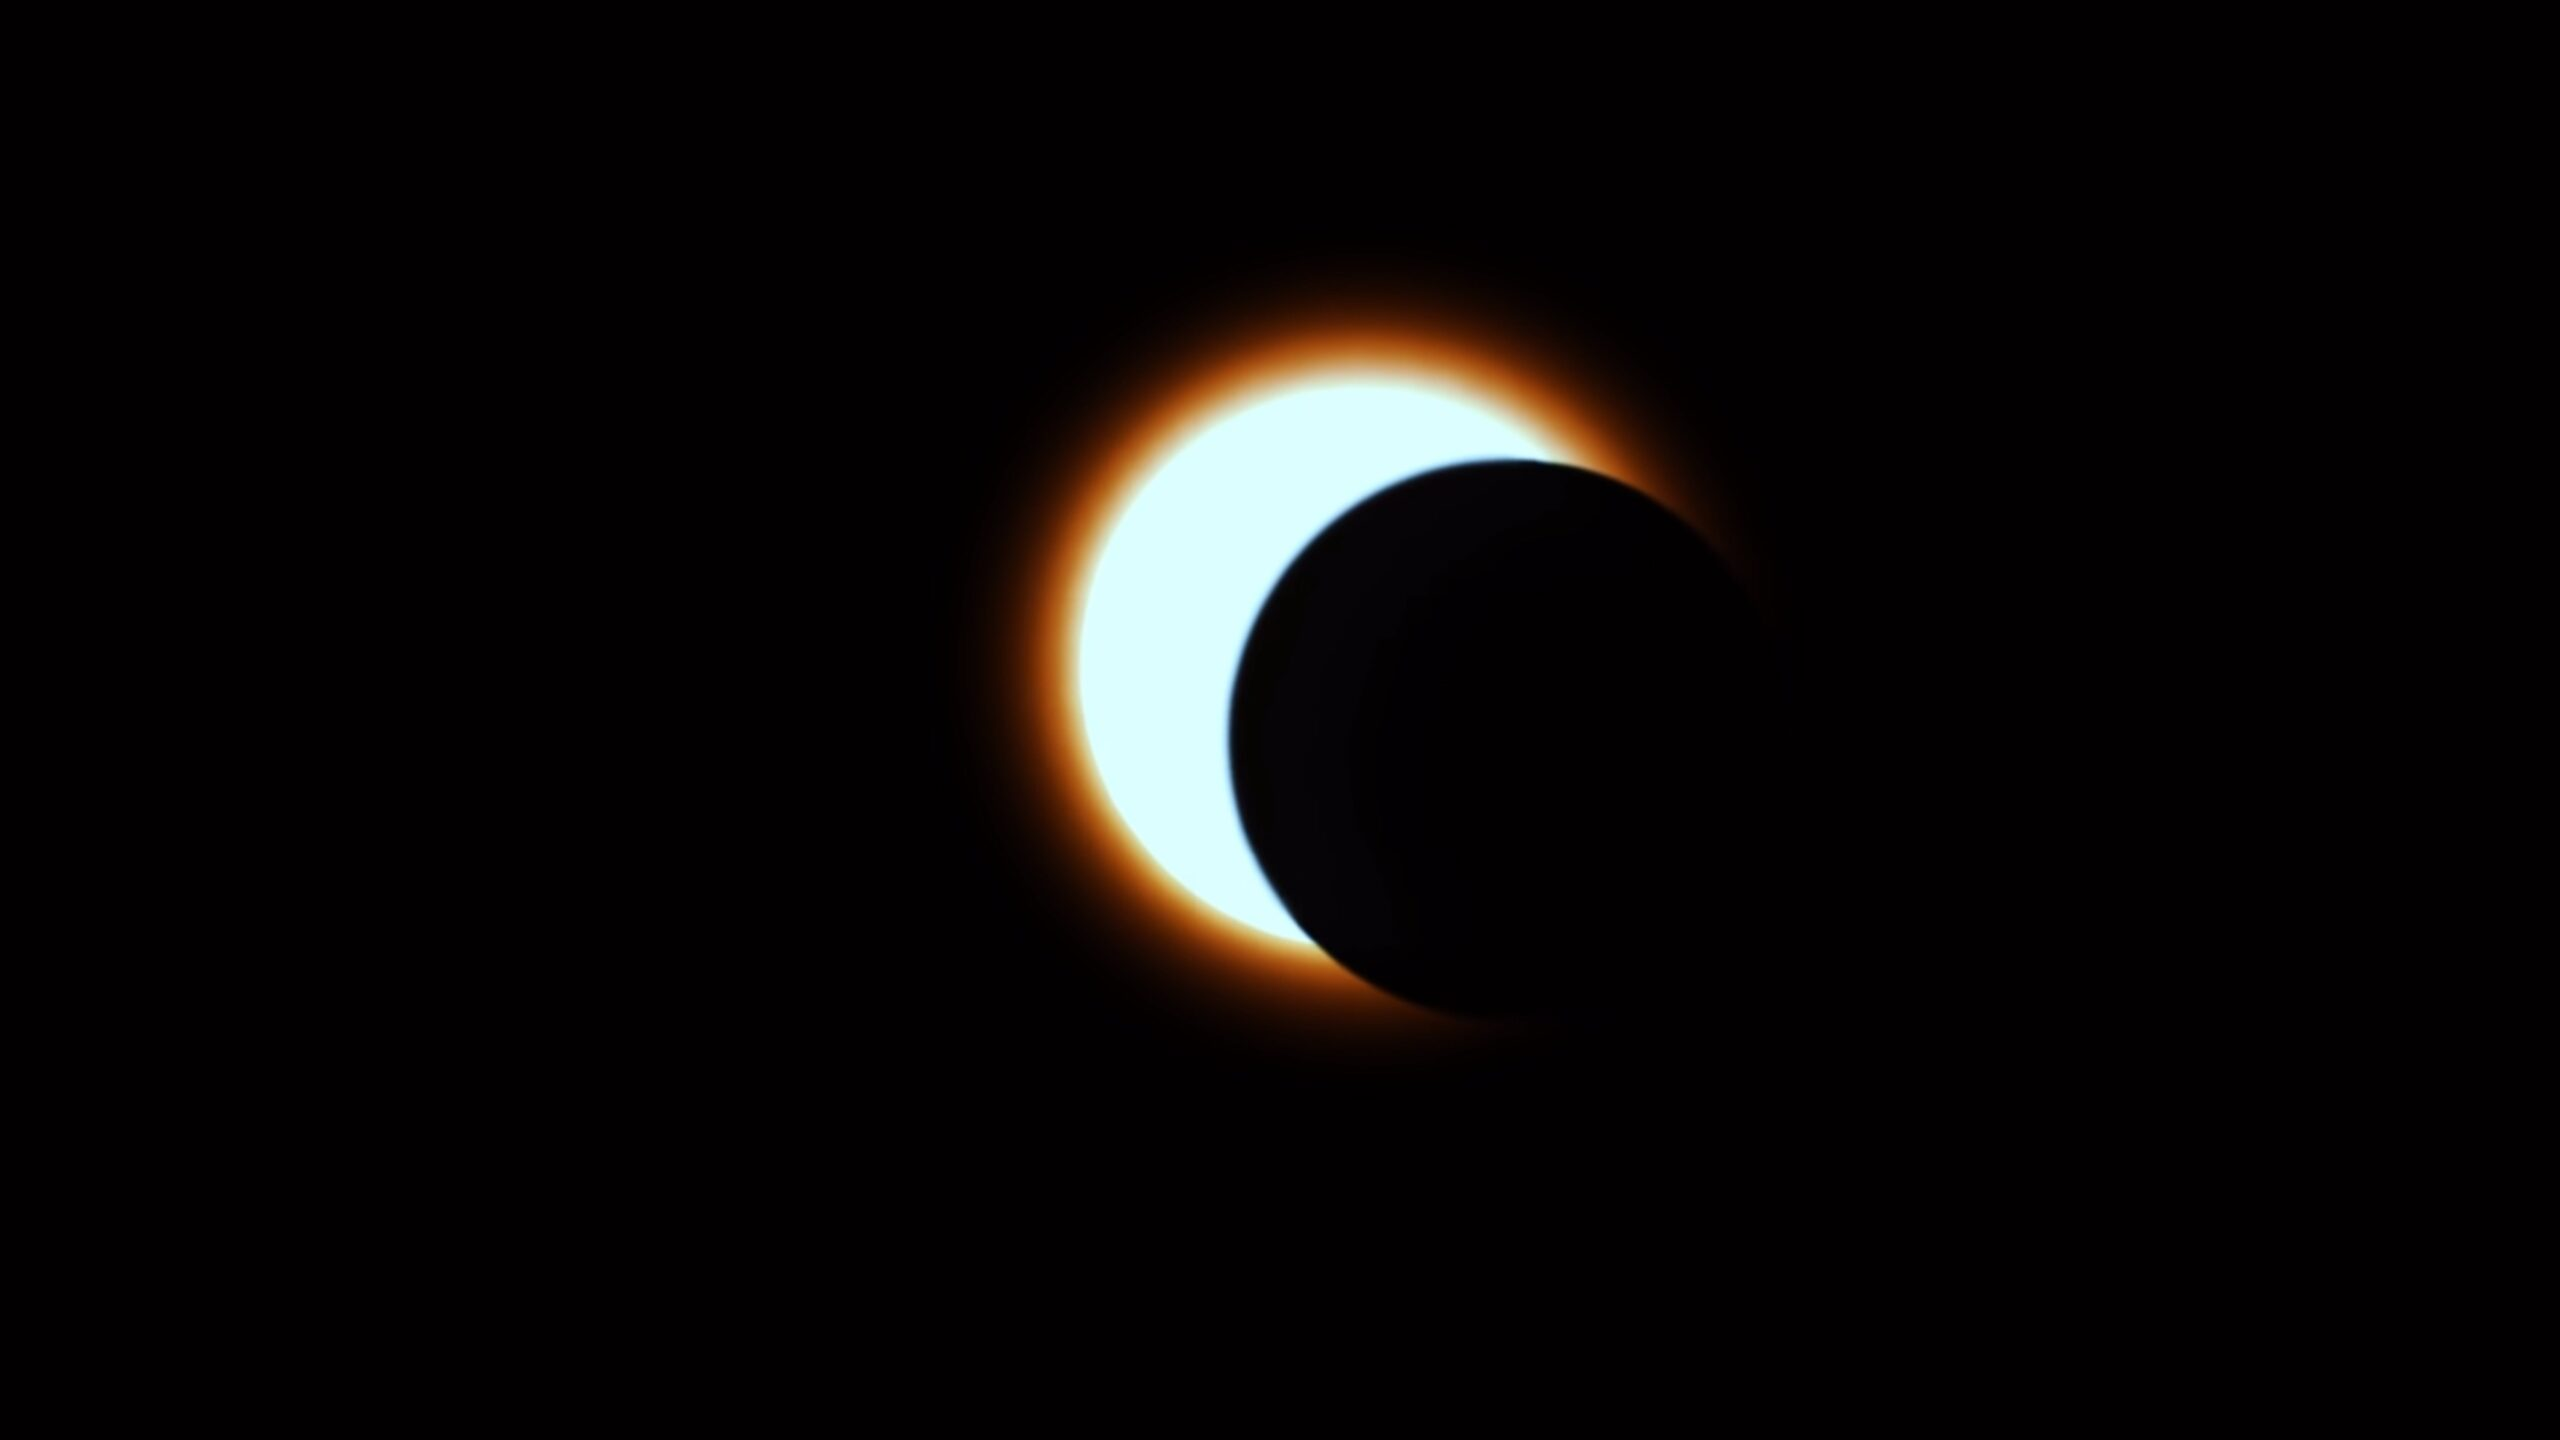 The moon eclipses the sun